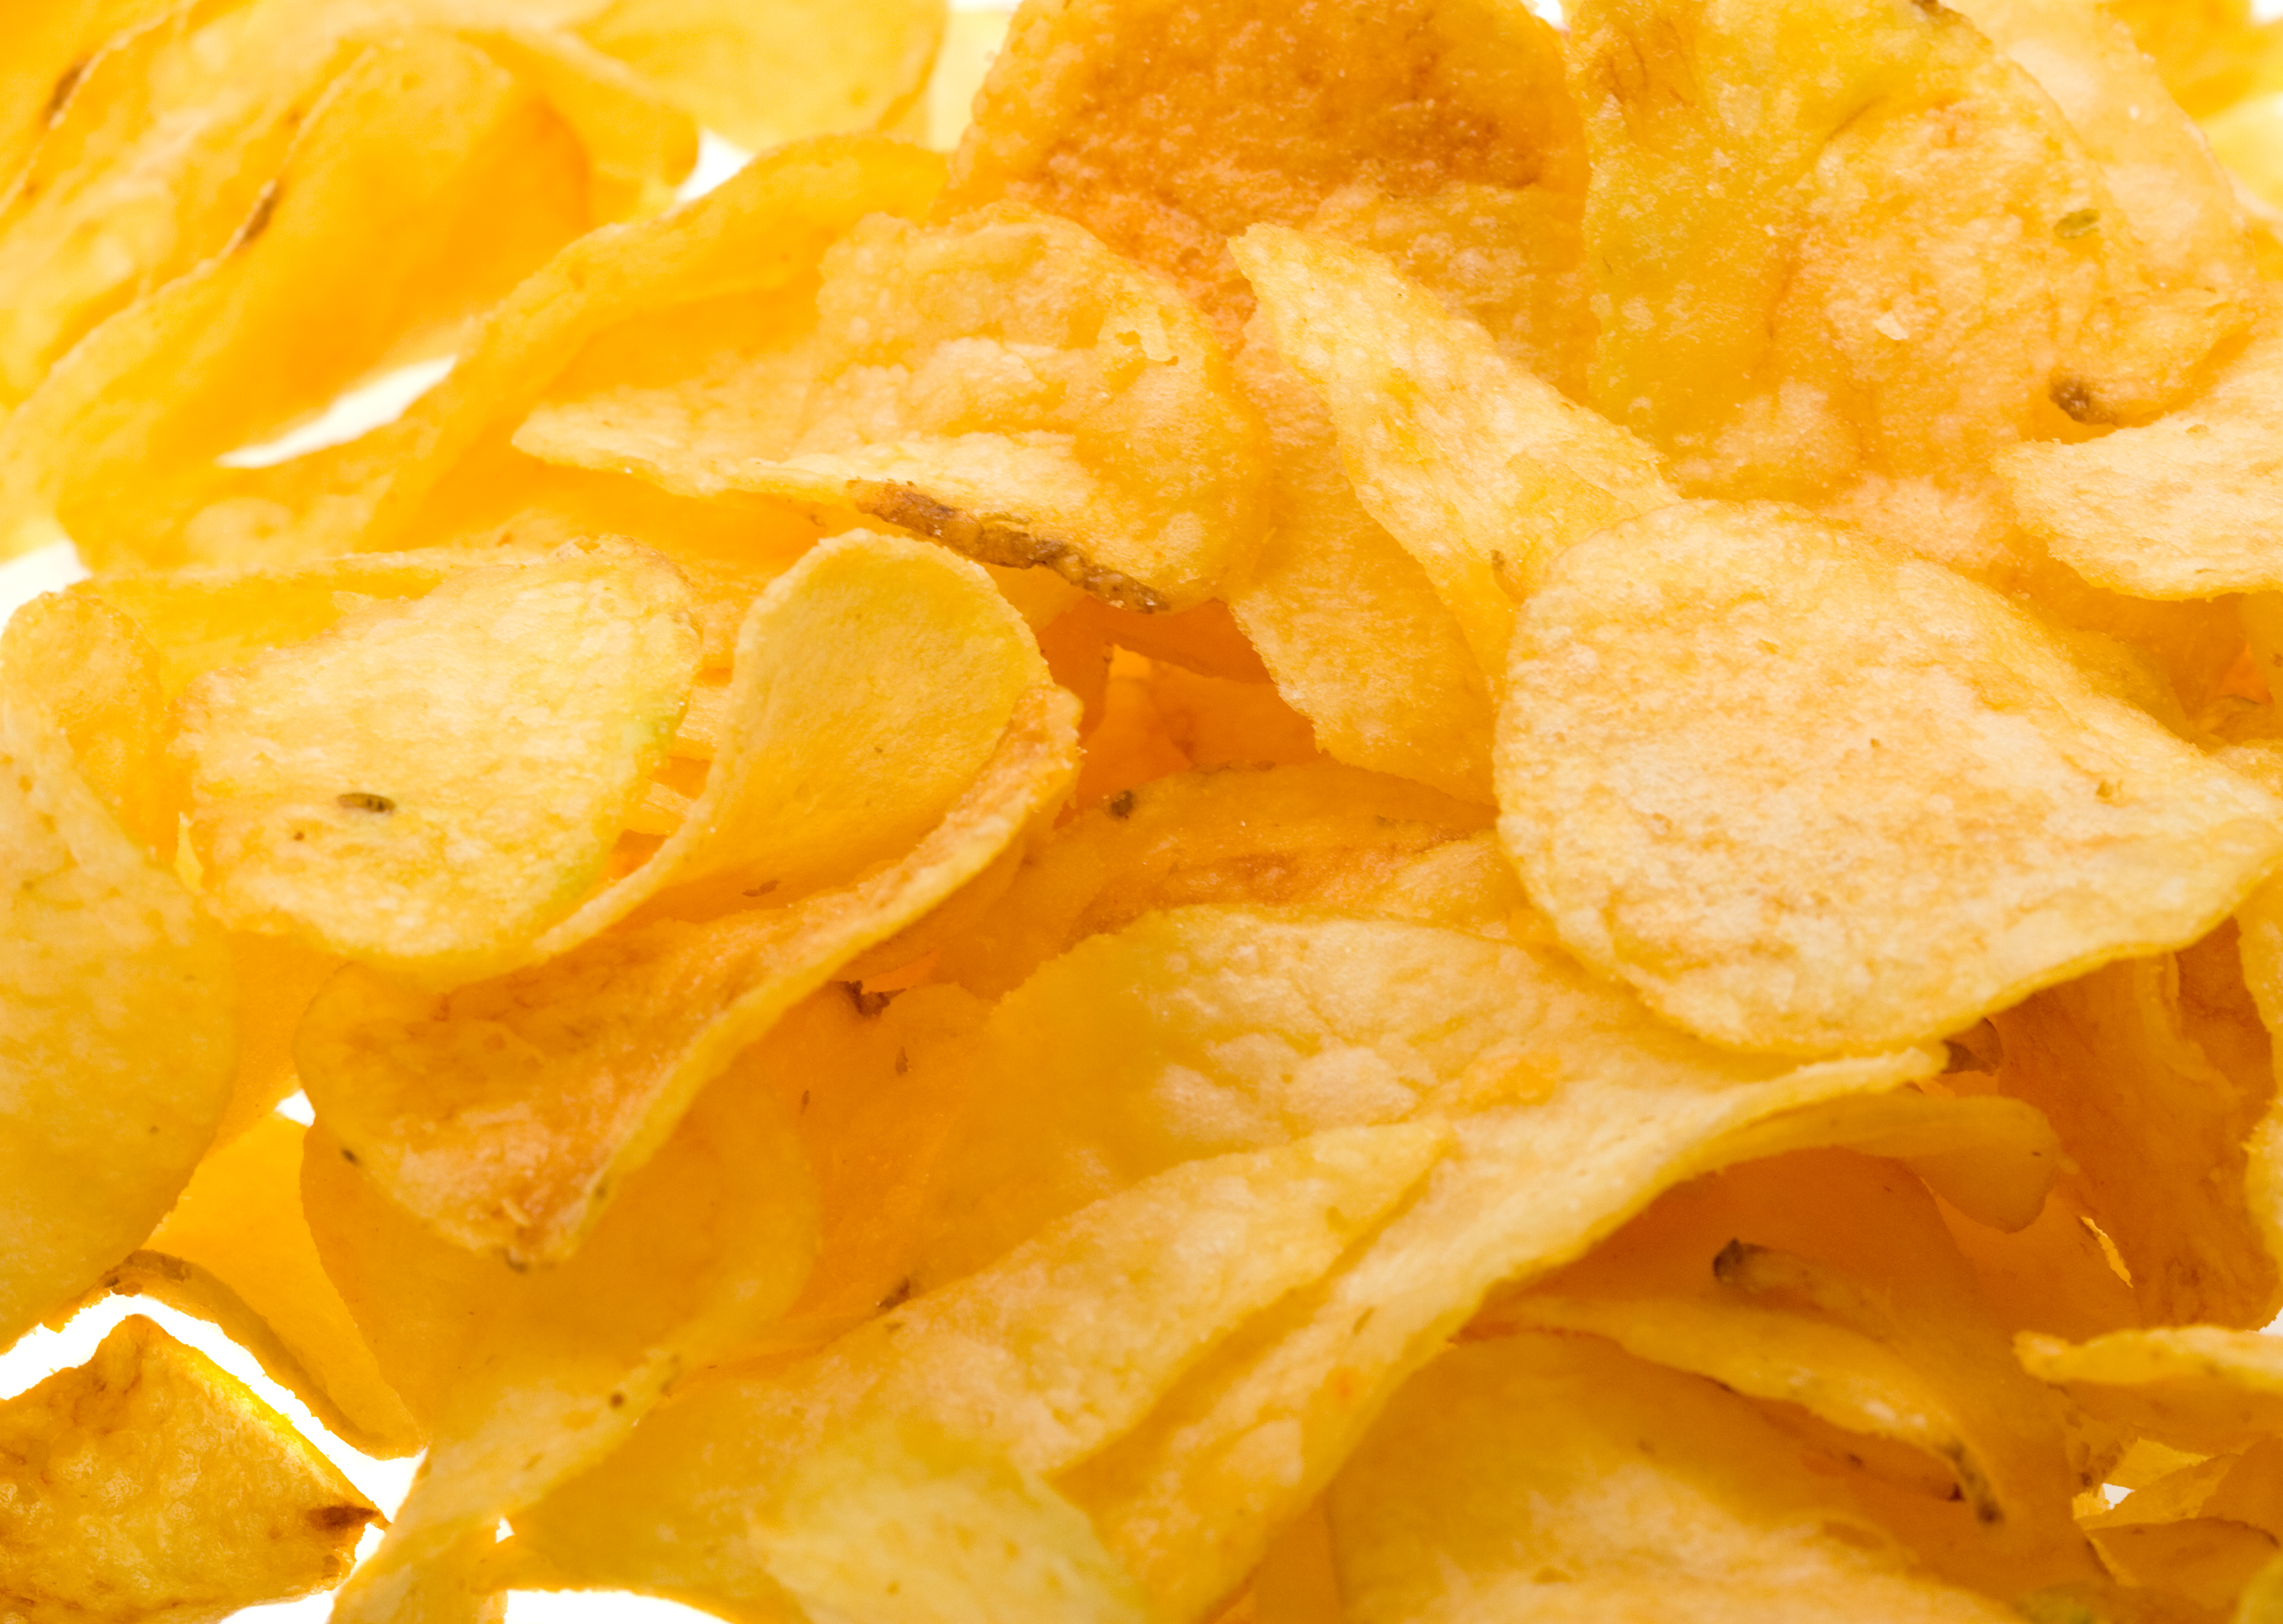 Chips Wallpaper Image Group 46 3233x2300